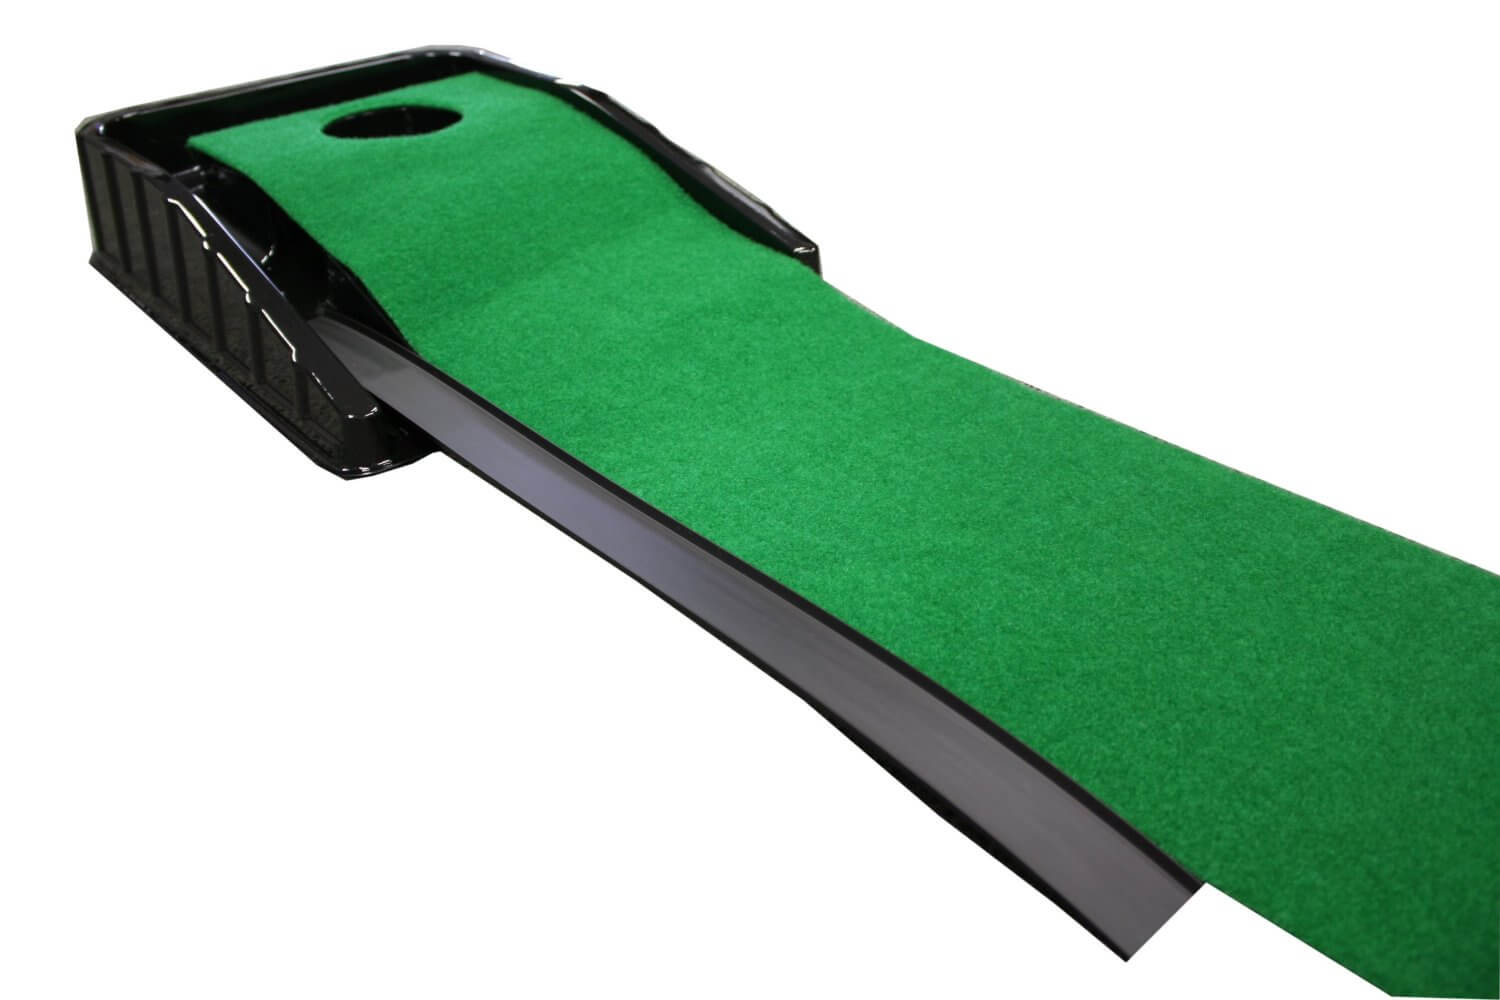 Finally, Another Standard Indoor Rolled Surface Putting Green, This One  Features A Larger